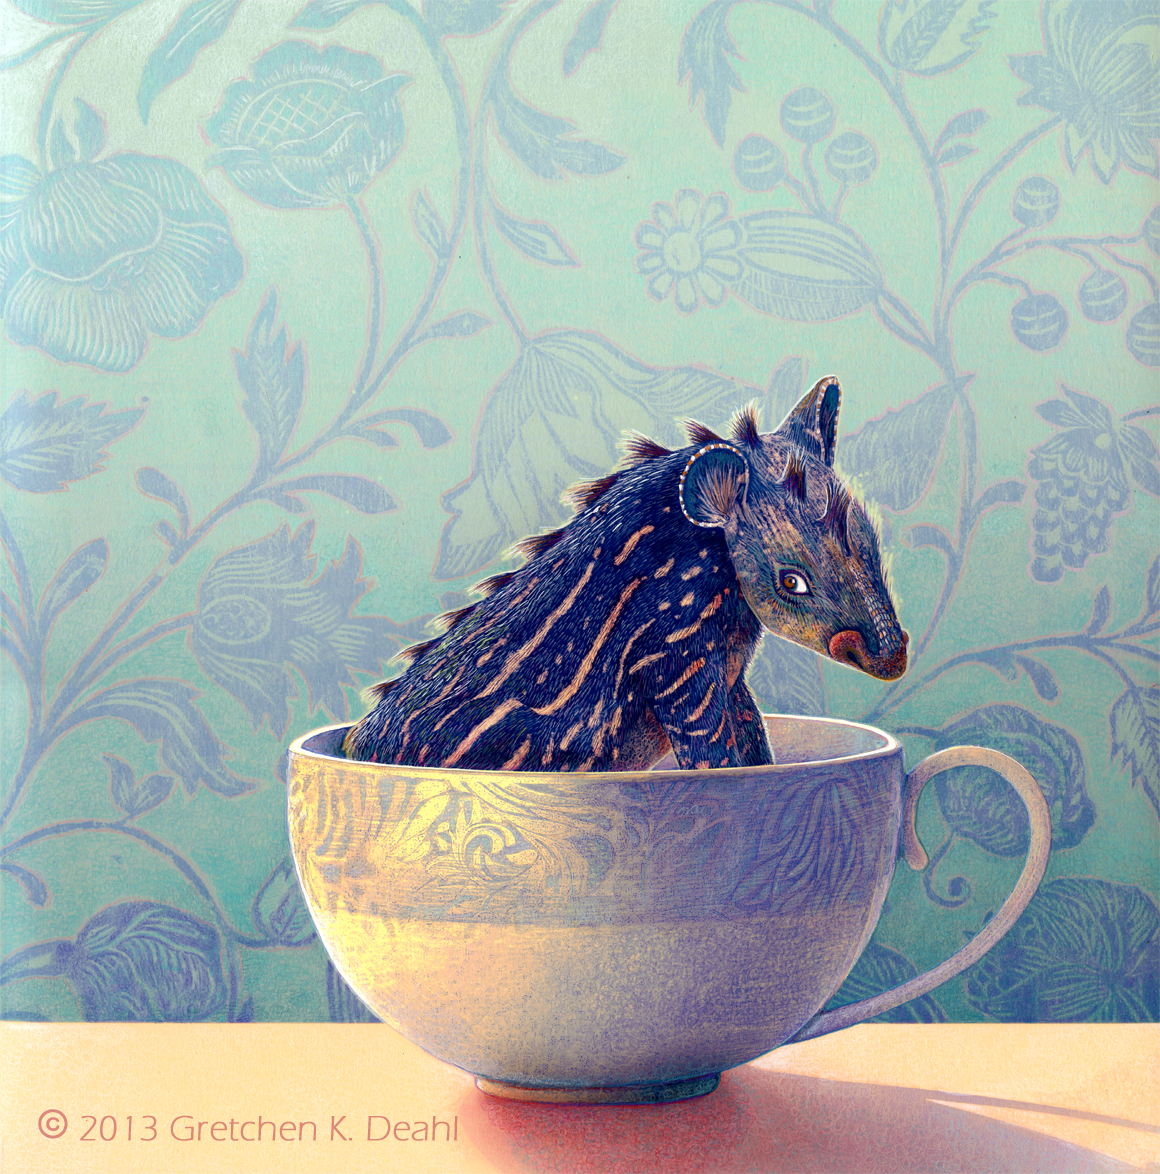 The Teacup Series